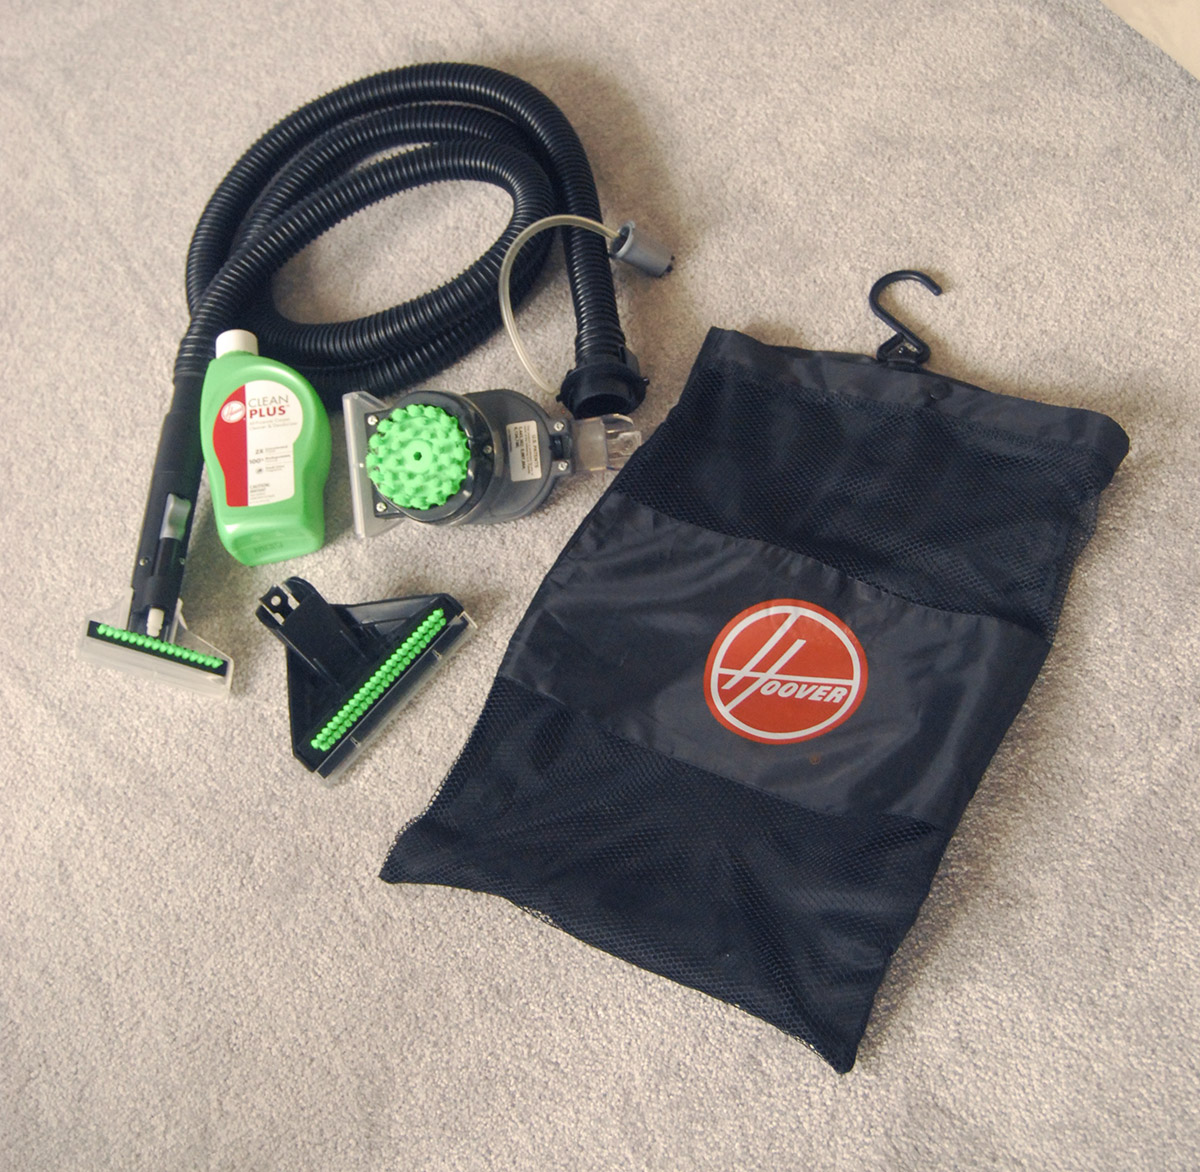 hoover powerscrub deluxe accessories